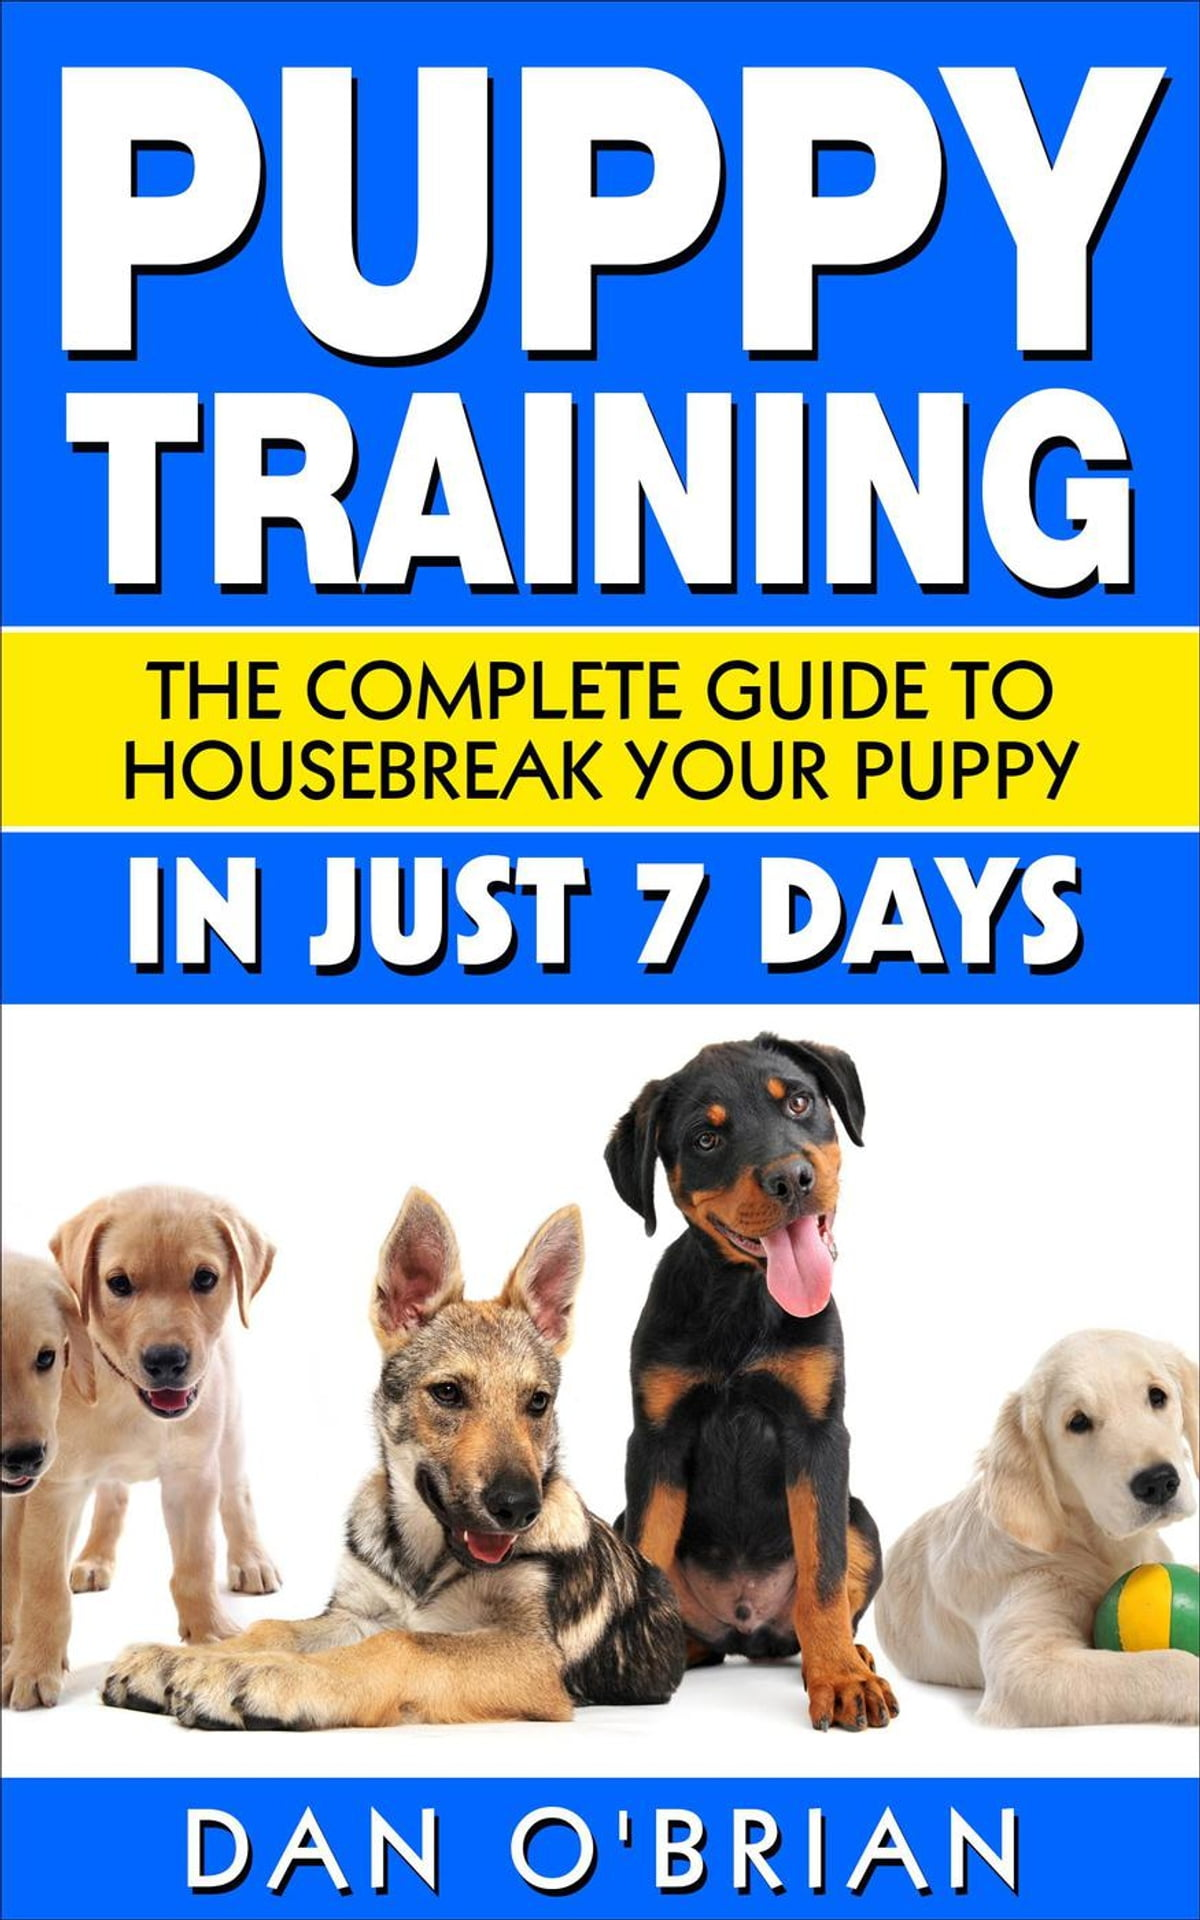 Puppy Training The Complete Guide To Housebreak Your Puppy In Just 7 Days Ebook By Dan O Brian 9781386180012 Rakuten Kobo Greece